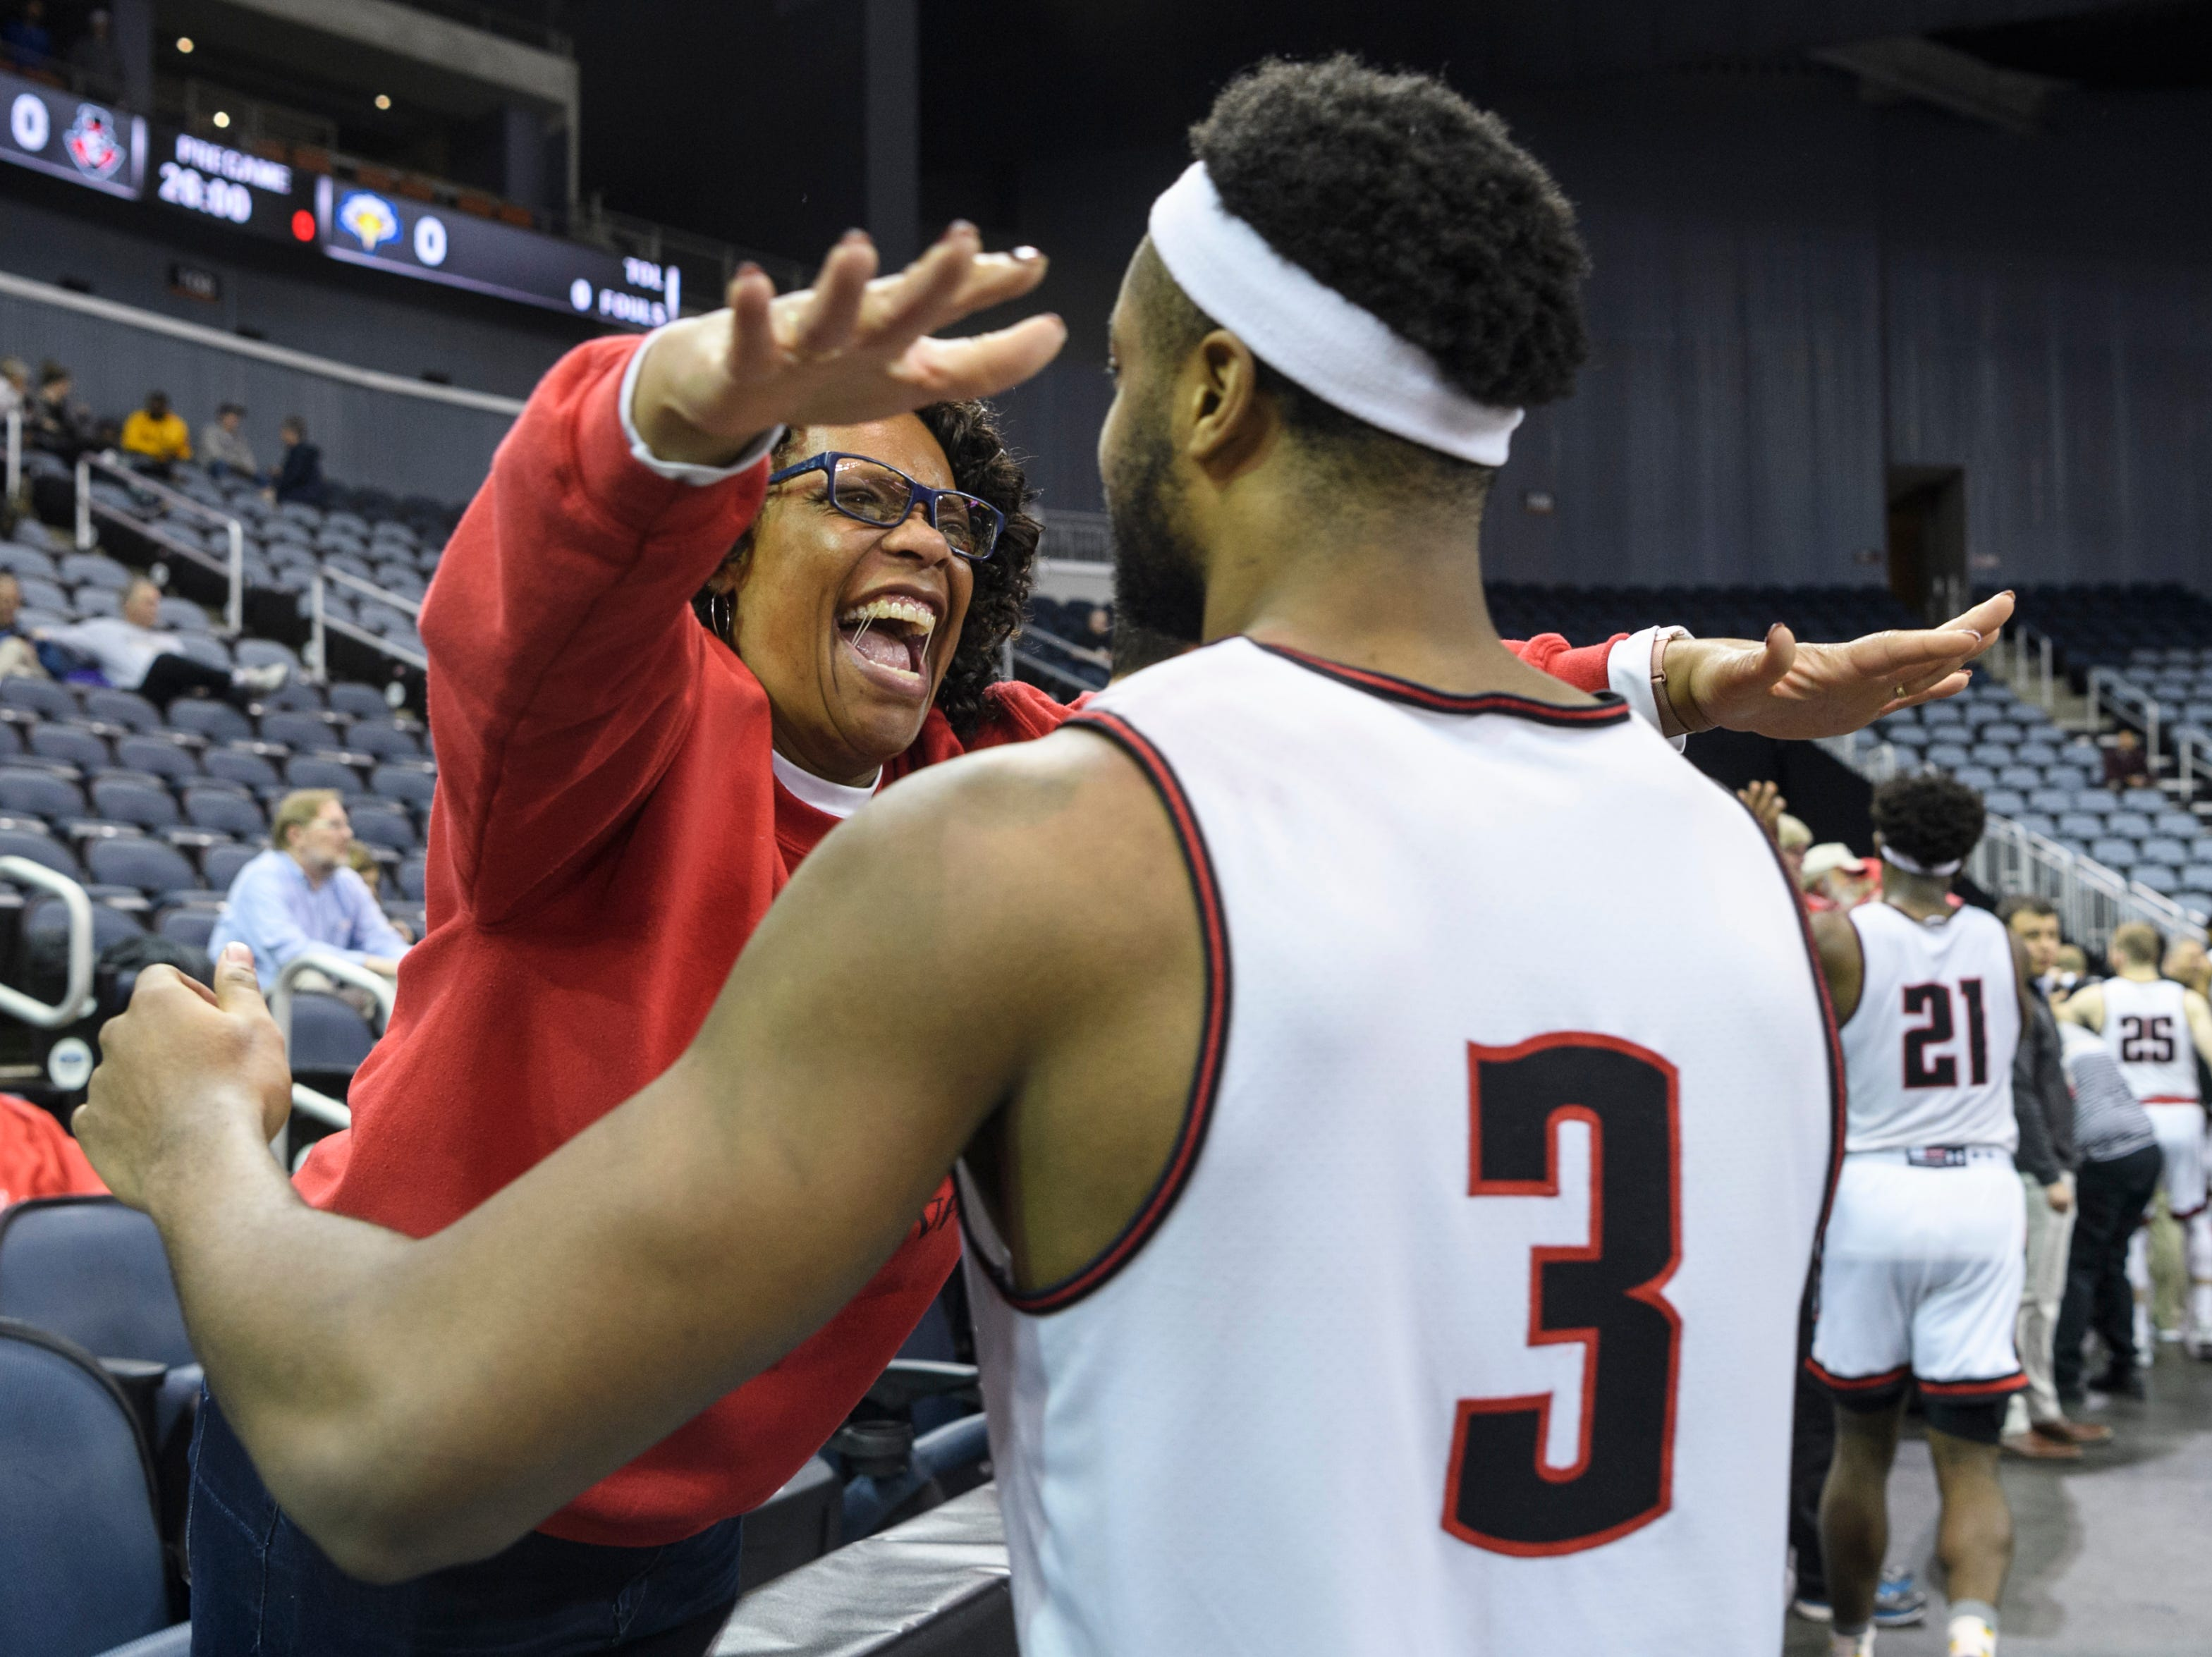 Cheryl Bunton embraces Austin Peay's Chris Porter-Bunton (3) as they celebrate the Governors' 91-85 victory over the Morehead State University Eagles in the Ohio Valley Conference tournament quarterfinals at Ford Center in Evansville, Ind., Thursday, March 7, 2019.